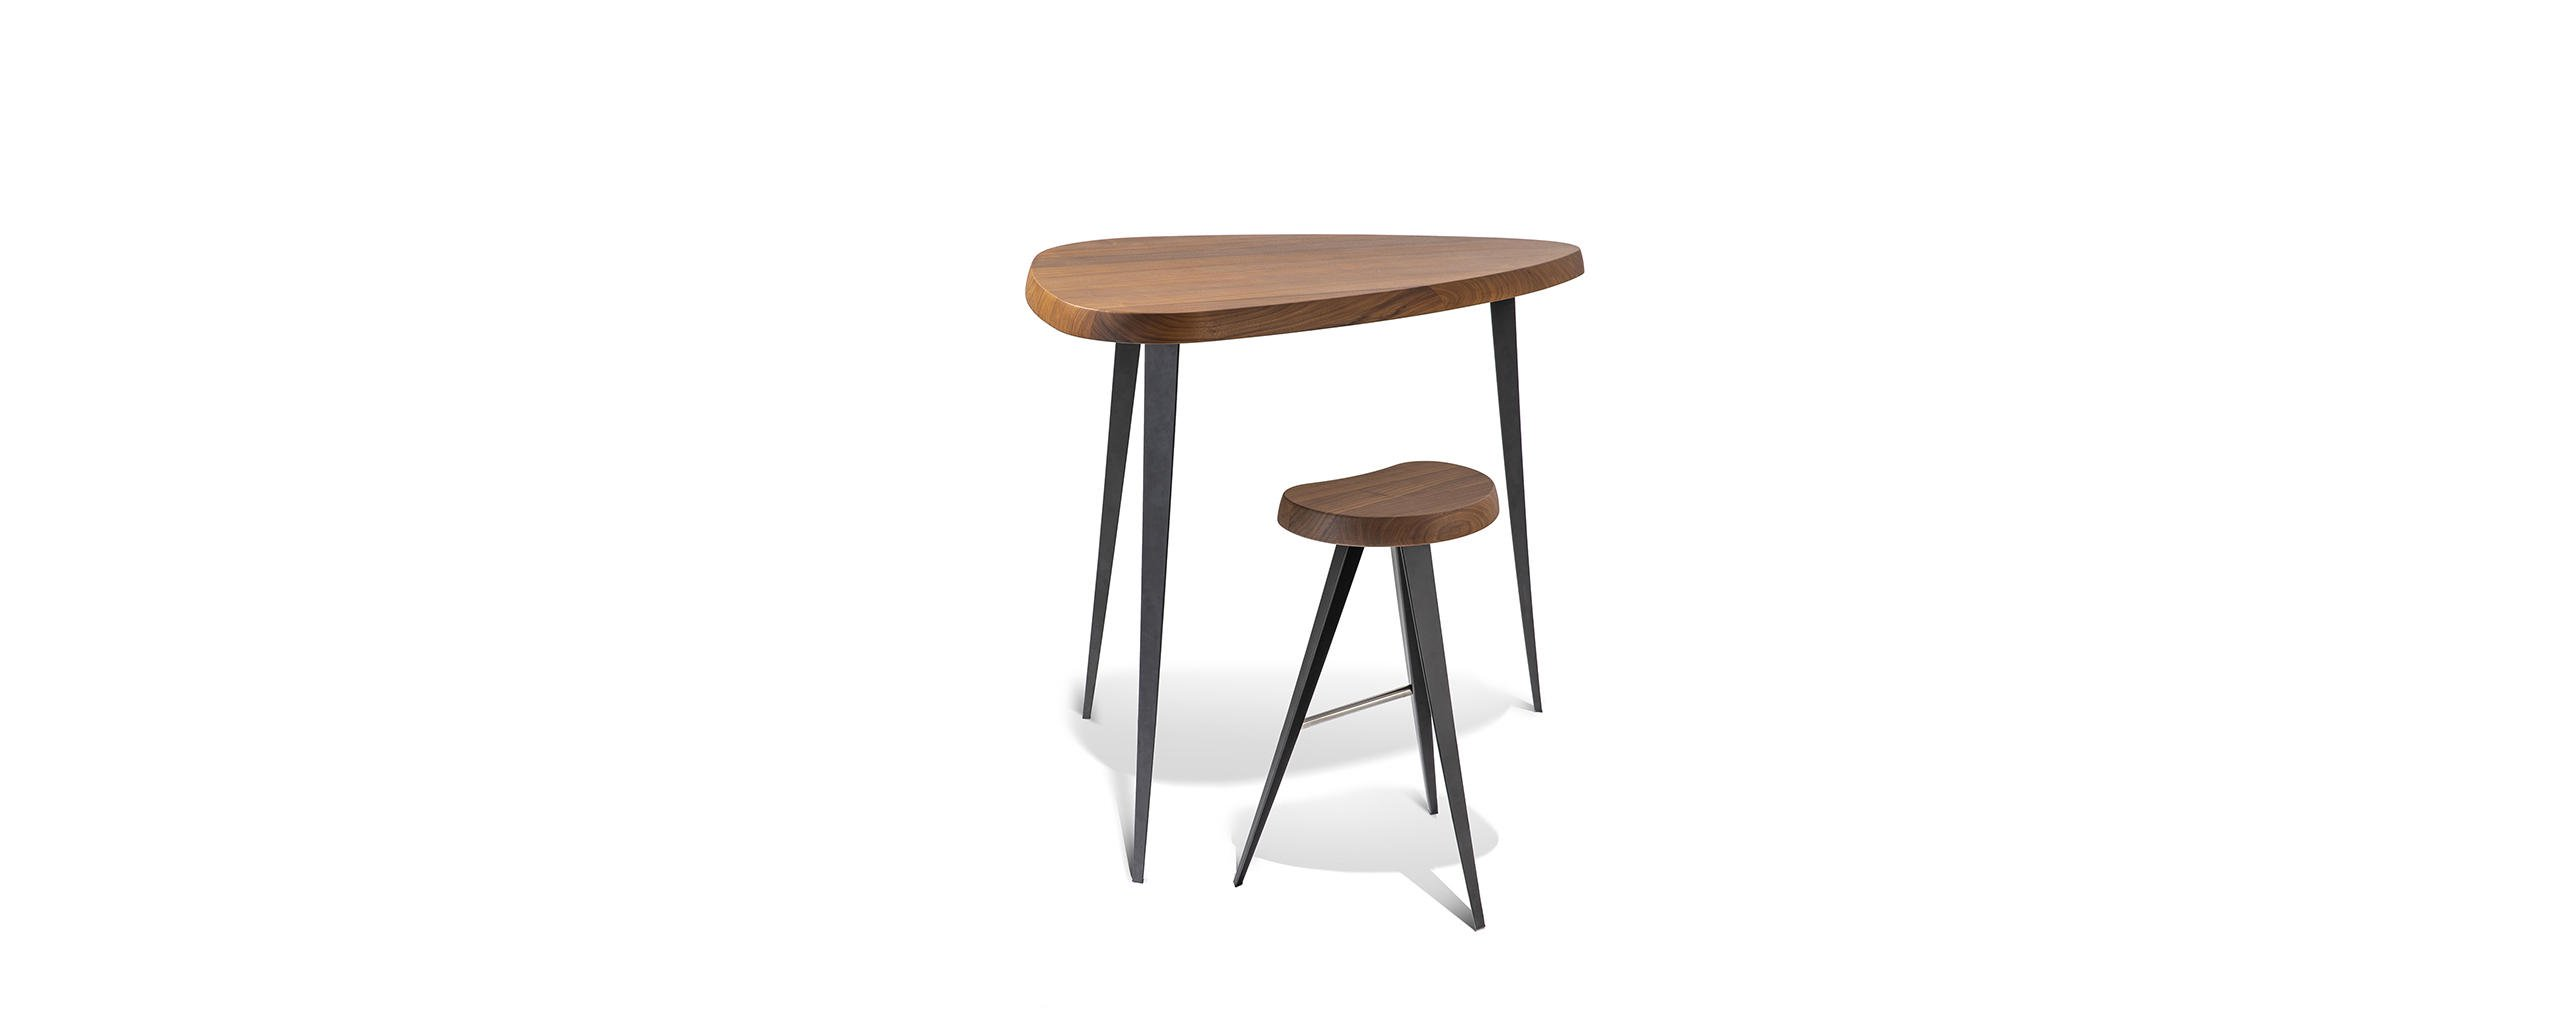 1_cassina_mexique_charlotte_perriand_bar_stool_and_table_0